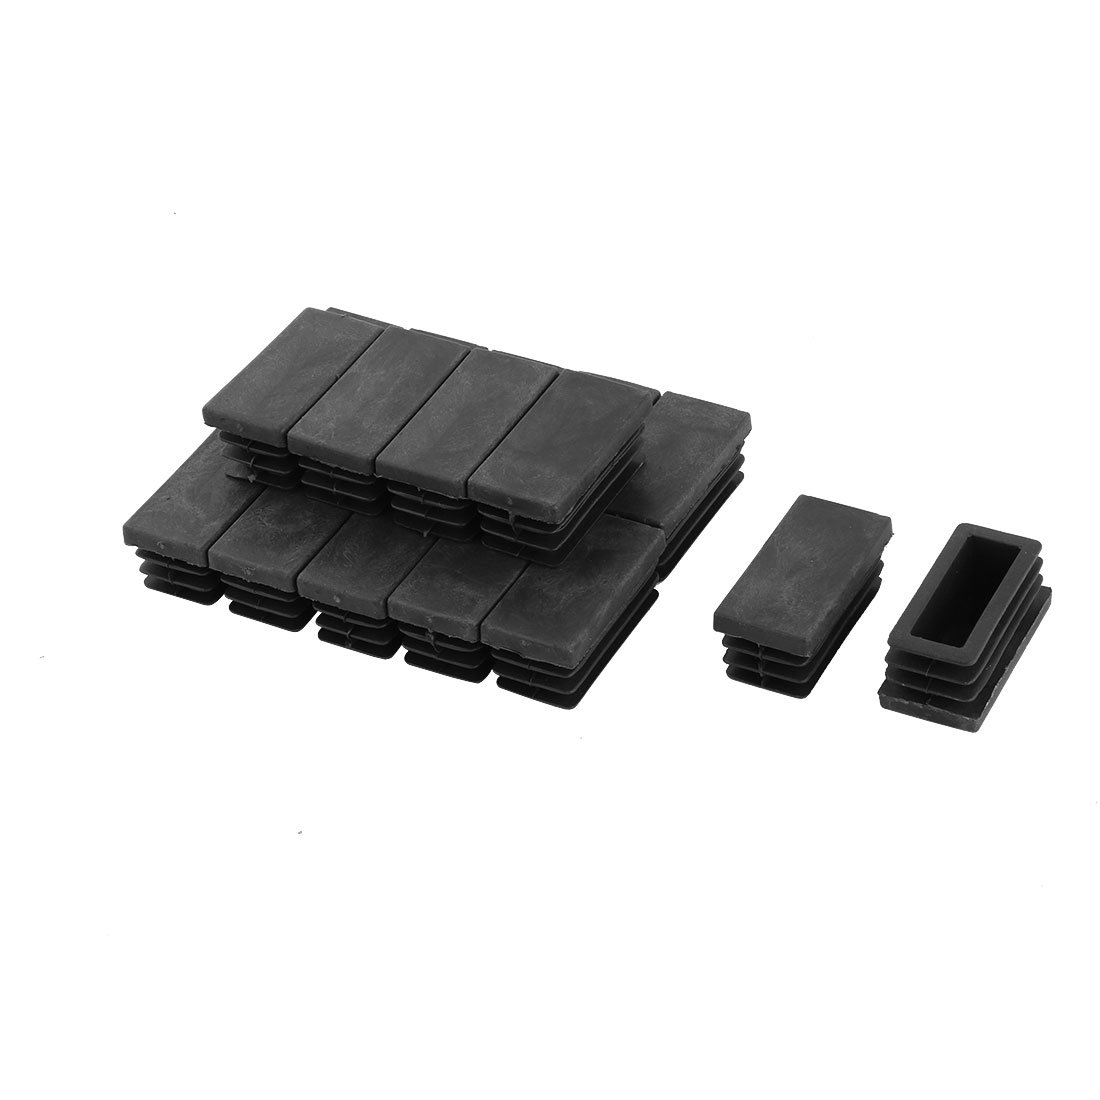 20 Pieces Black Plastic Blanking End Caps Pipe Inserts 20mm x 40mm uxcell a14082800ux0074